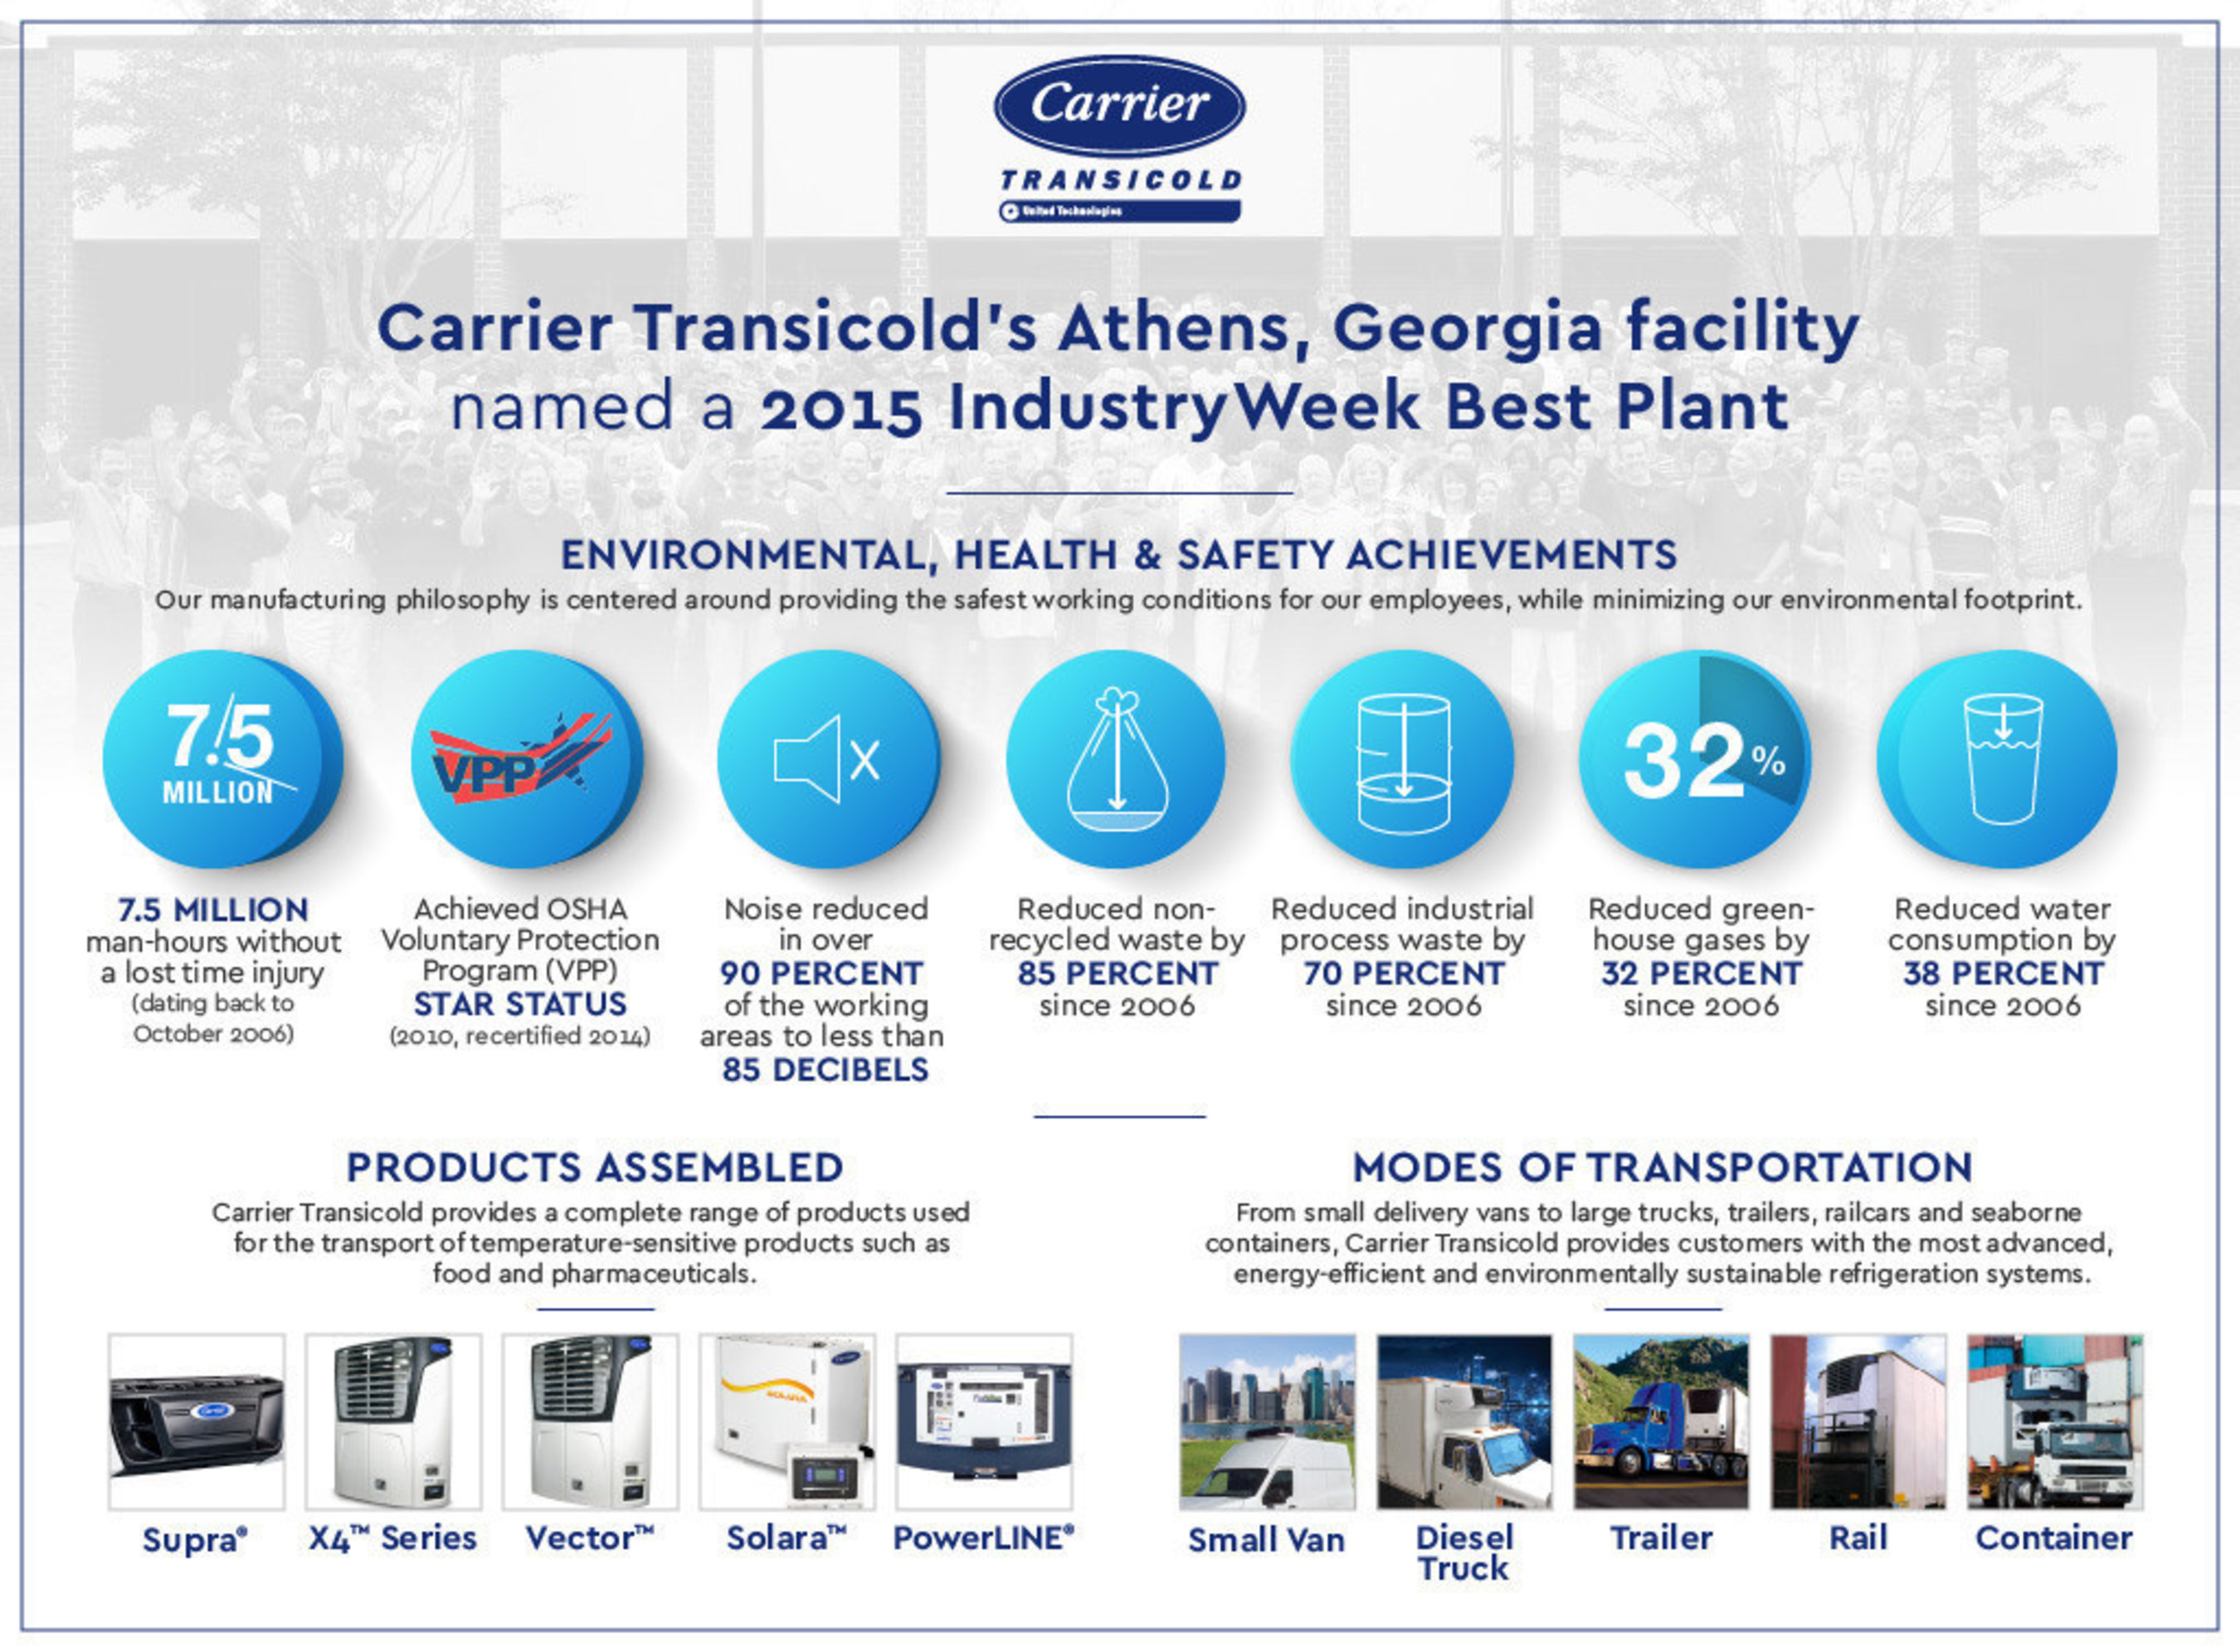 Carrier Transicold S Athens Facility A Leading Producer Of Transport Refrigeration Equipment For Trucks Trailers